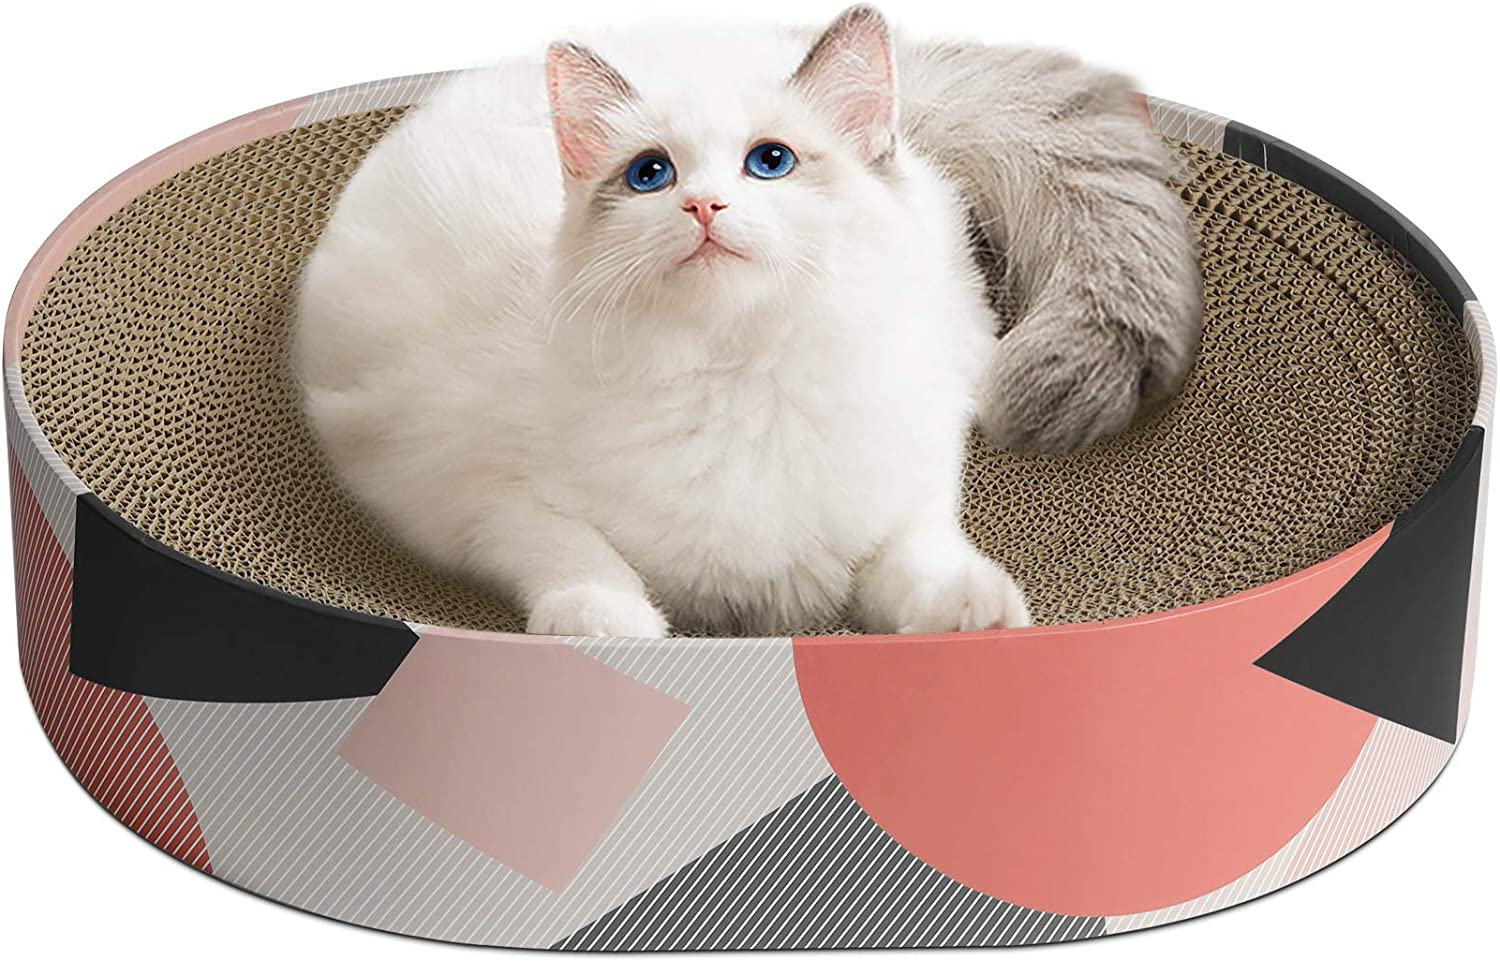 ComSaf Cat Scratcher Cardboard, Oval Corrugated Scratch Pad, Cat Scratching Lounge Bed, Durable Recycle Board for Furniture Protection, Cat Scratcher Bowl, Cat Kitty Training Toy